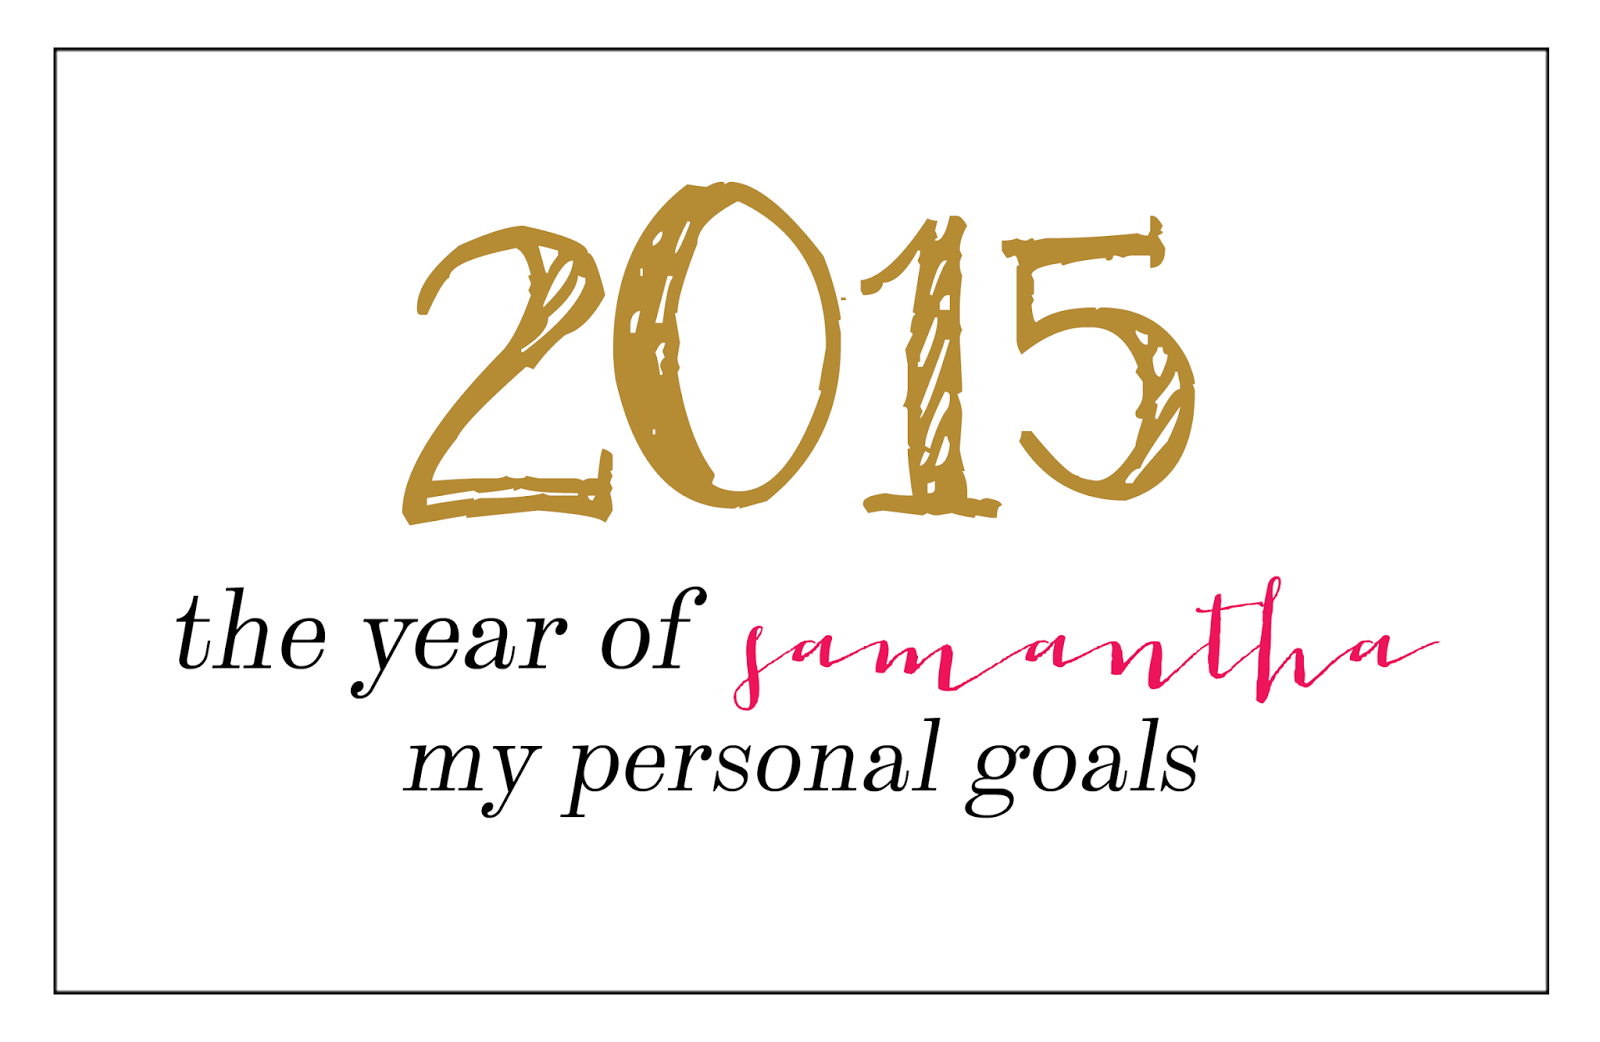 of life and style goals for 2015 personal these are goals that are going to help me become a better person and really help me become the person i absolutely know i can be 2015 is the year about me